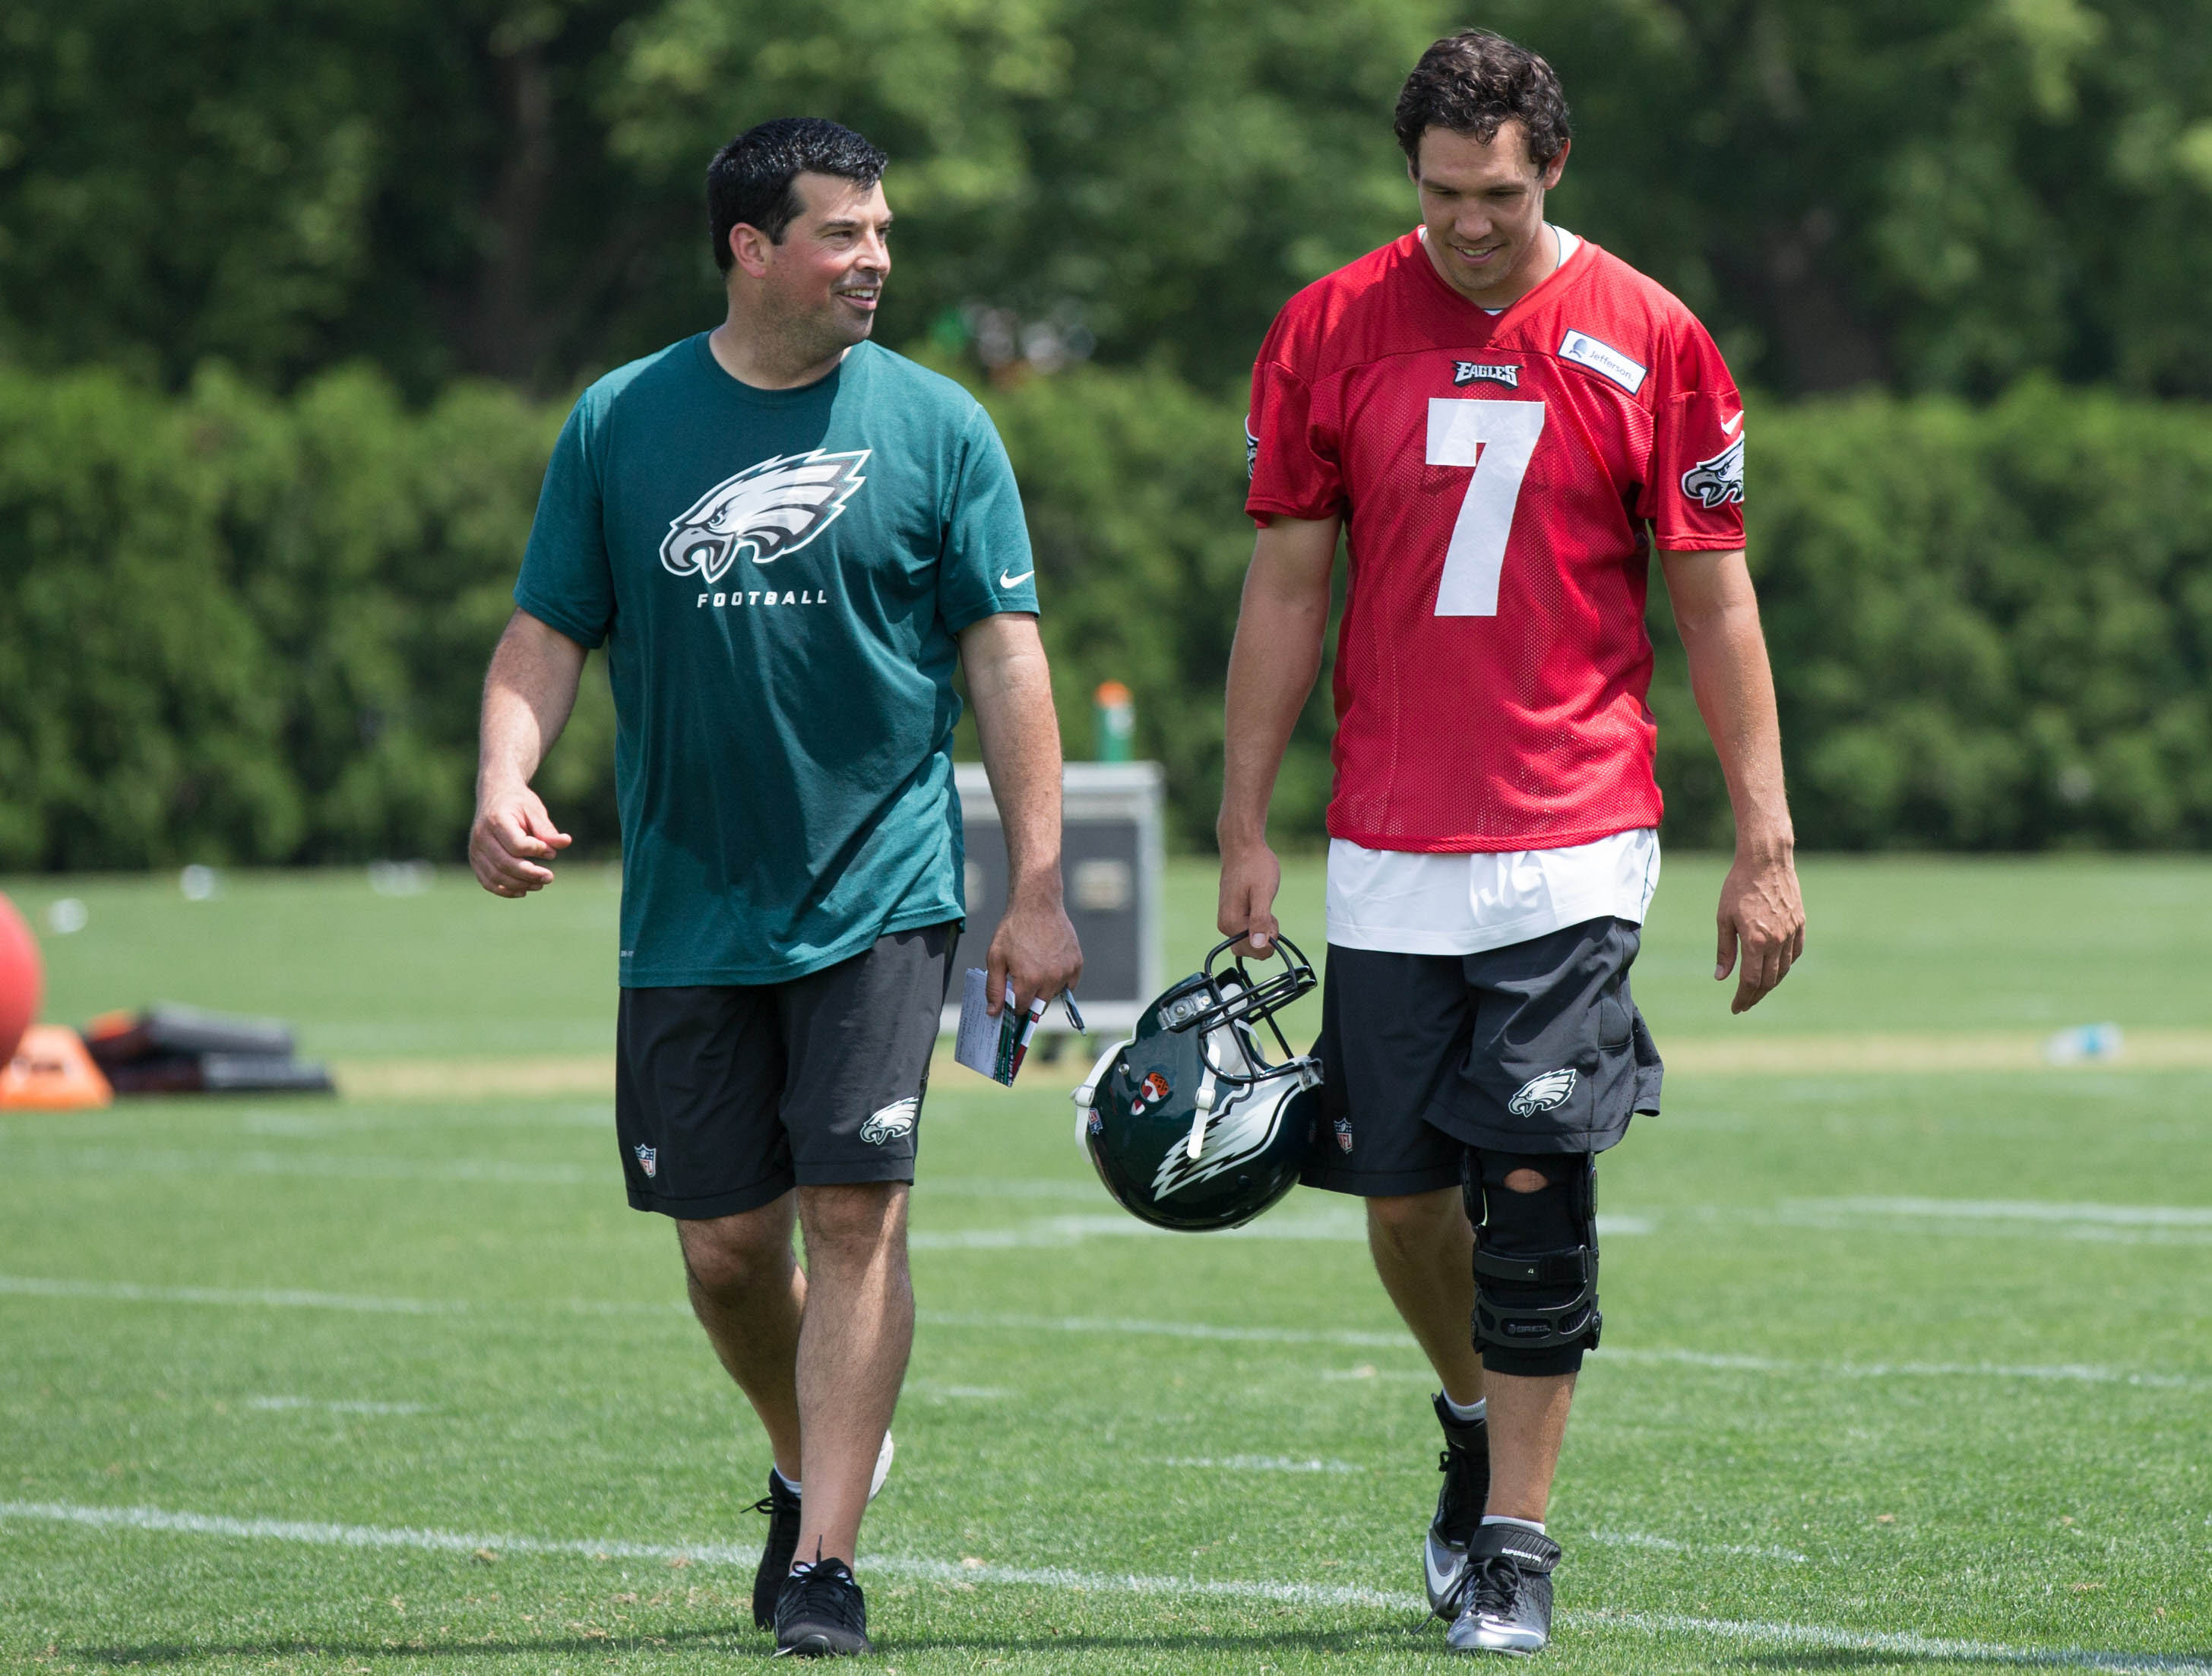 Ryan Day expected to join Chip Kelly, 49ers as QB coach or OC ...